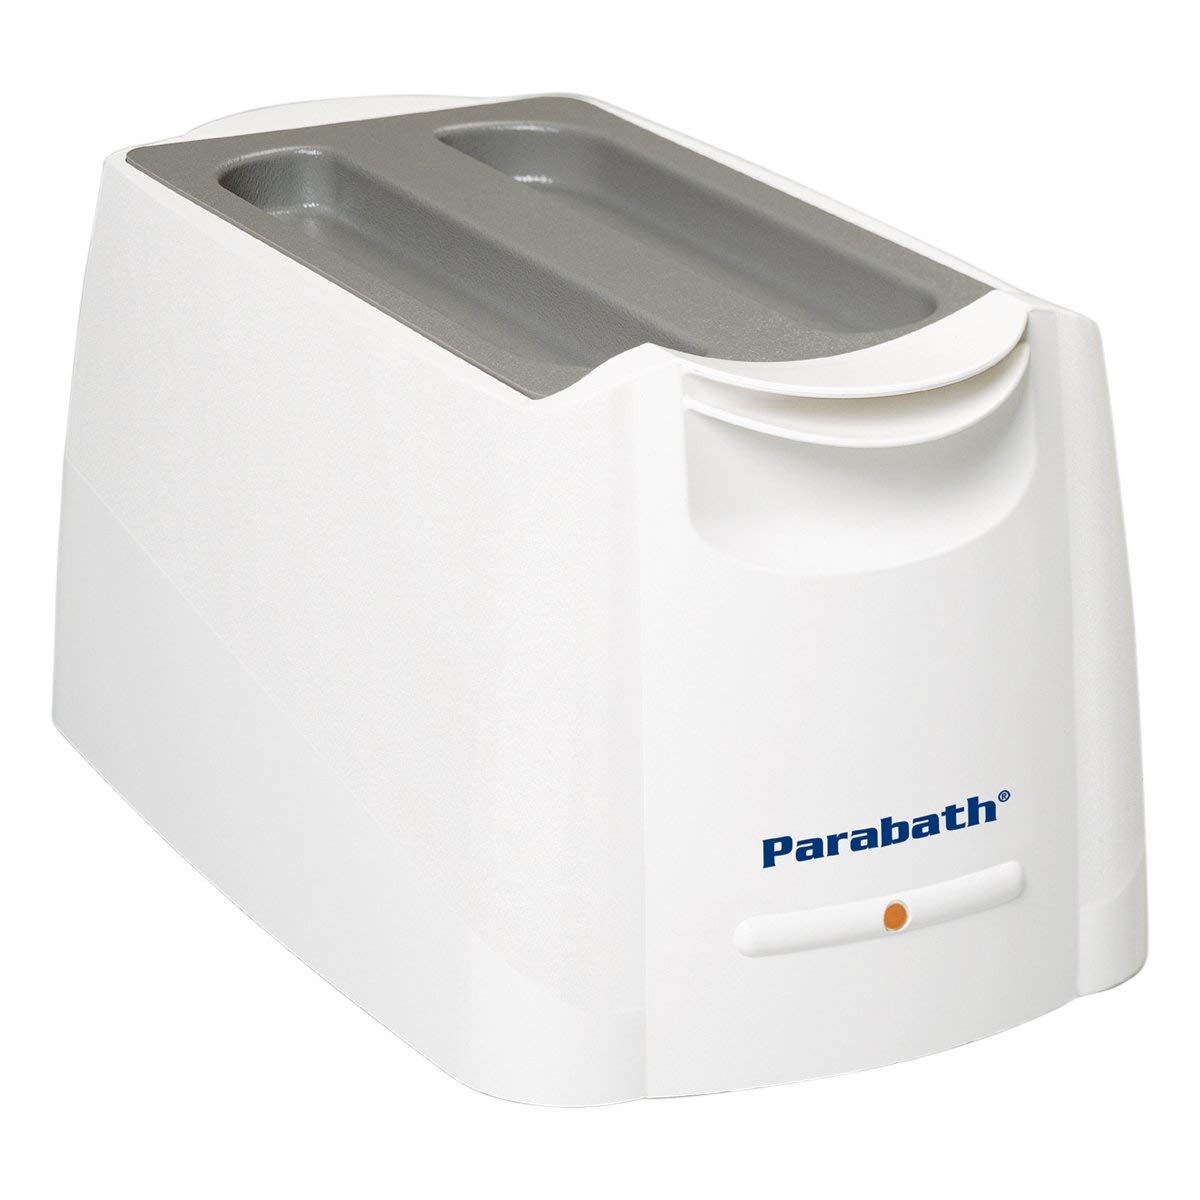 5. Parabath Paraffin Wax Bath: